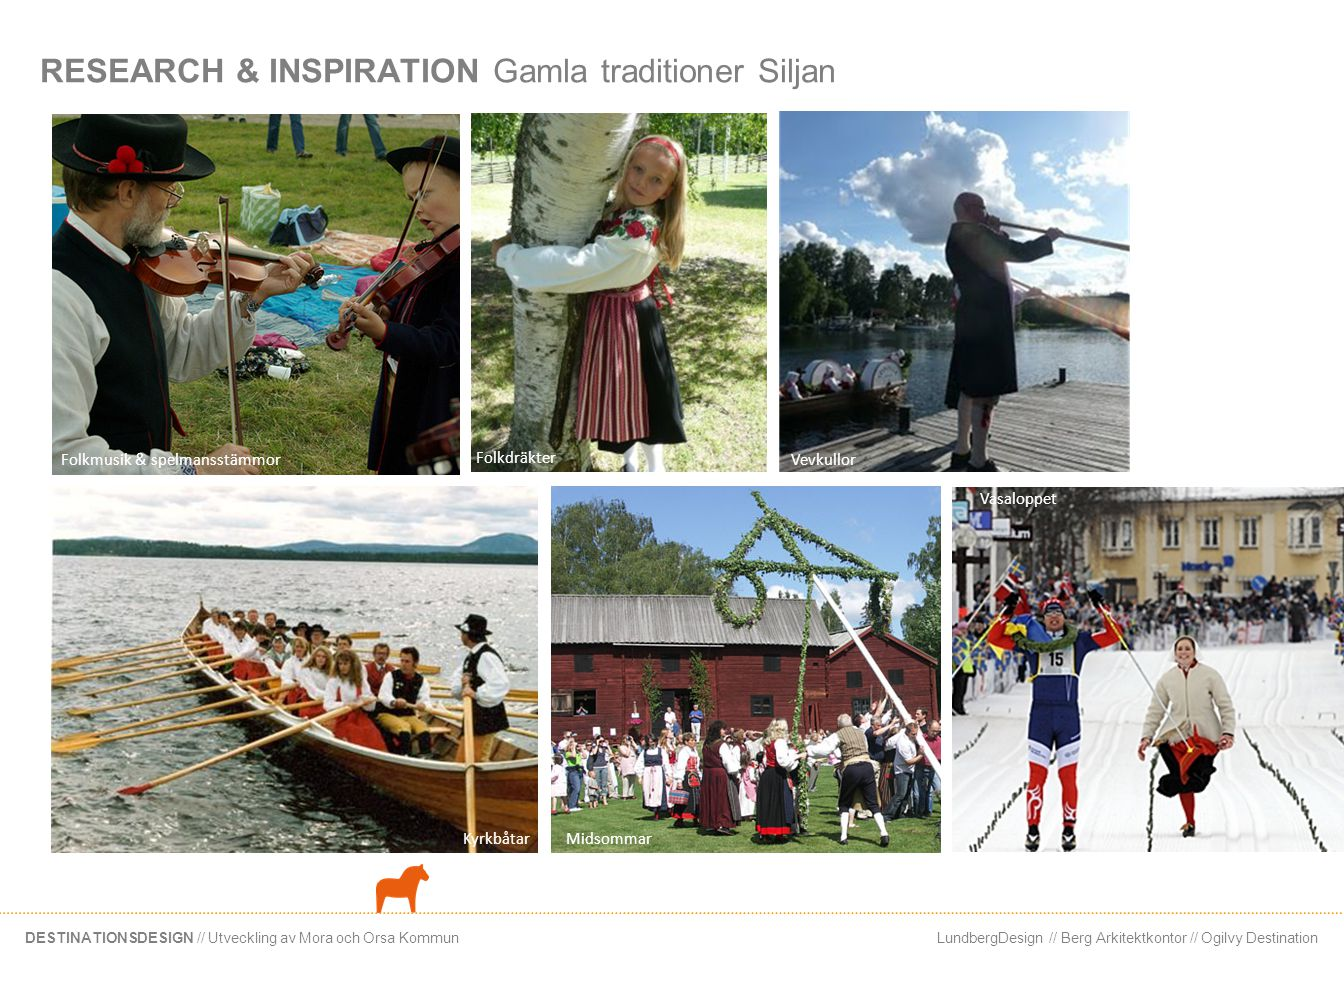 RESEARCH & INSPIRATION Gamla traditioner Siljan